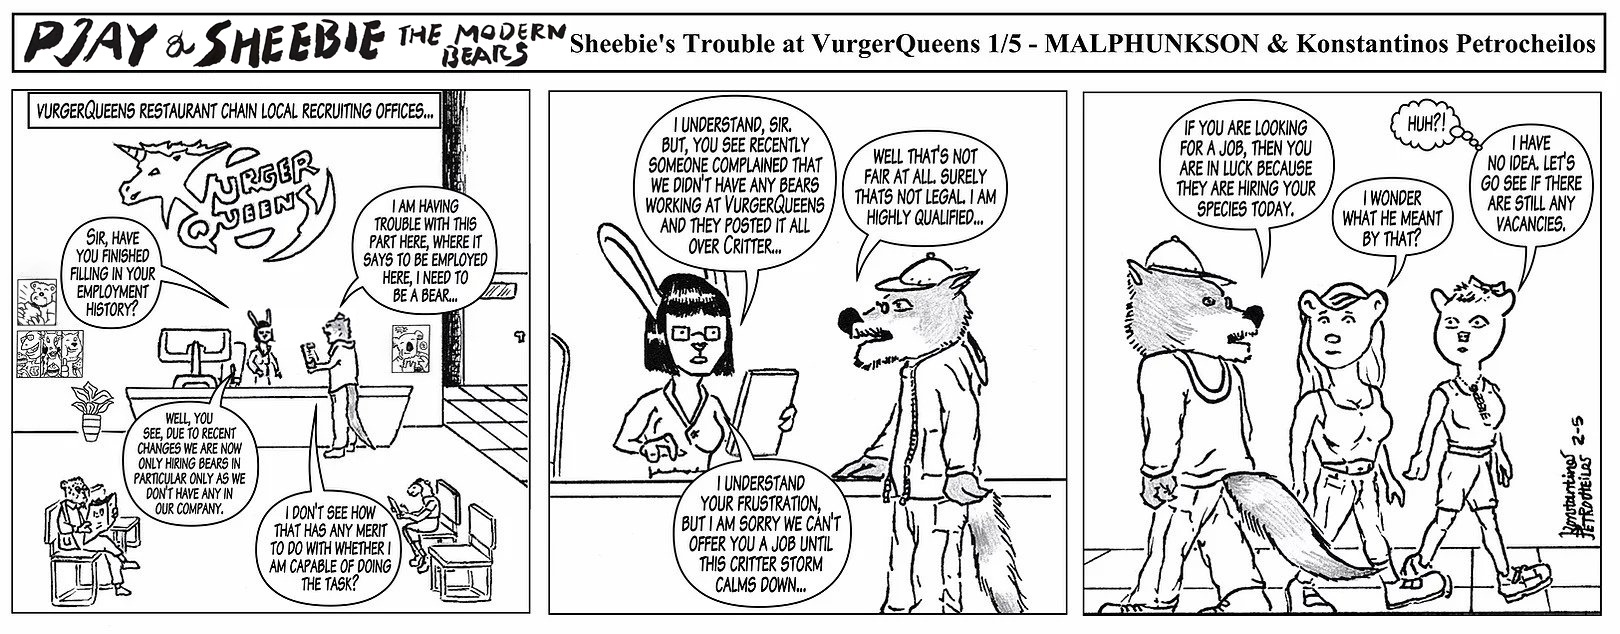 Sheebie's Trouble at VurgerQueens 1/5